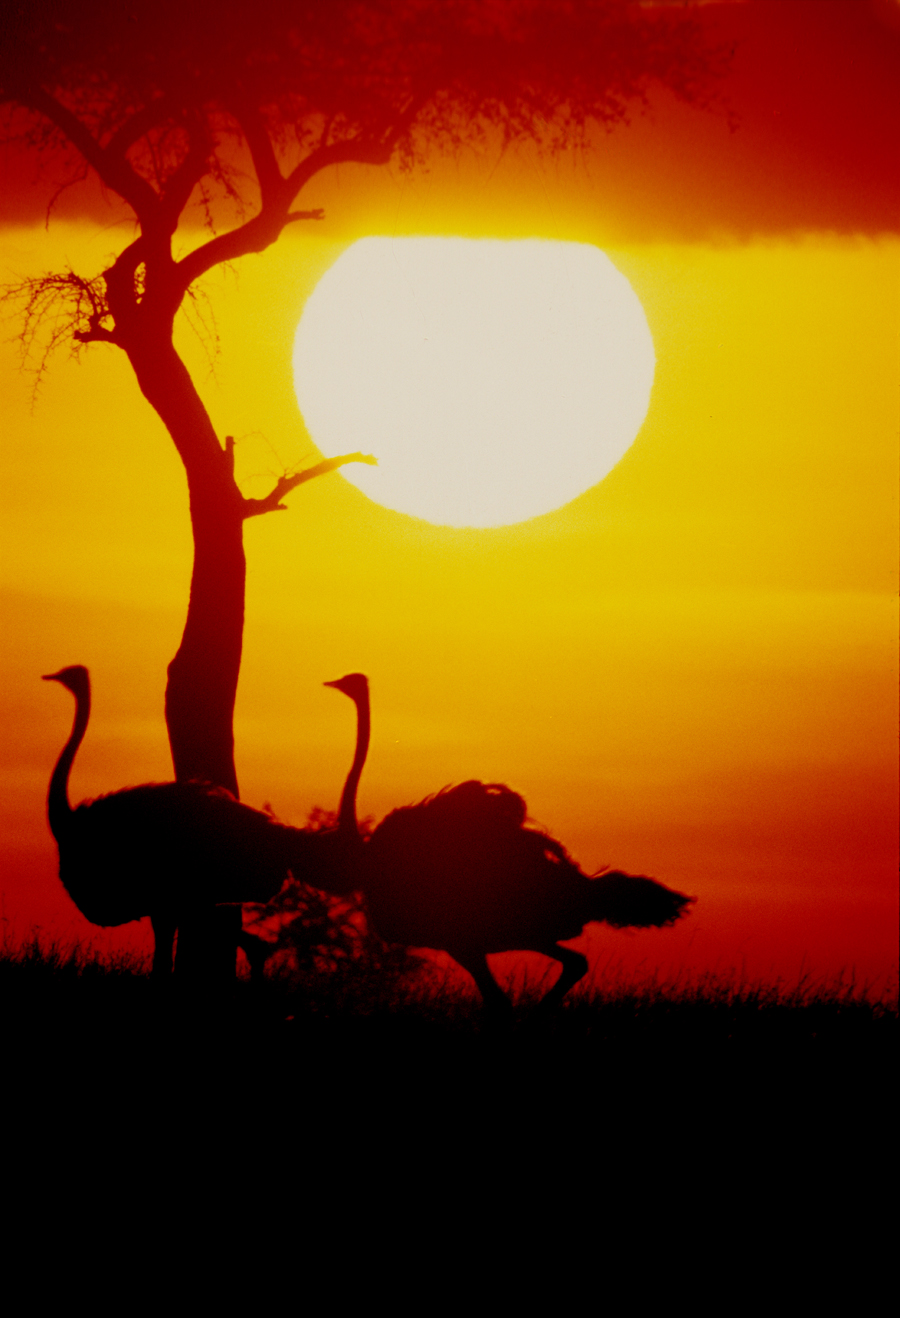 OSTRICH AT SUNSET